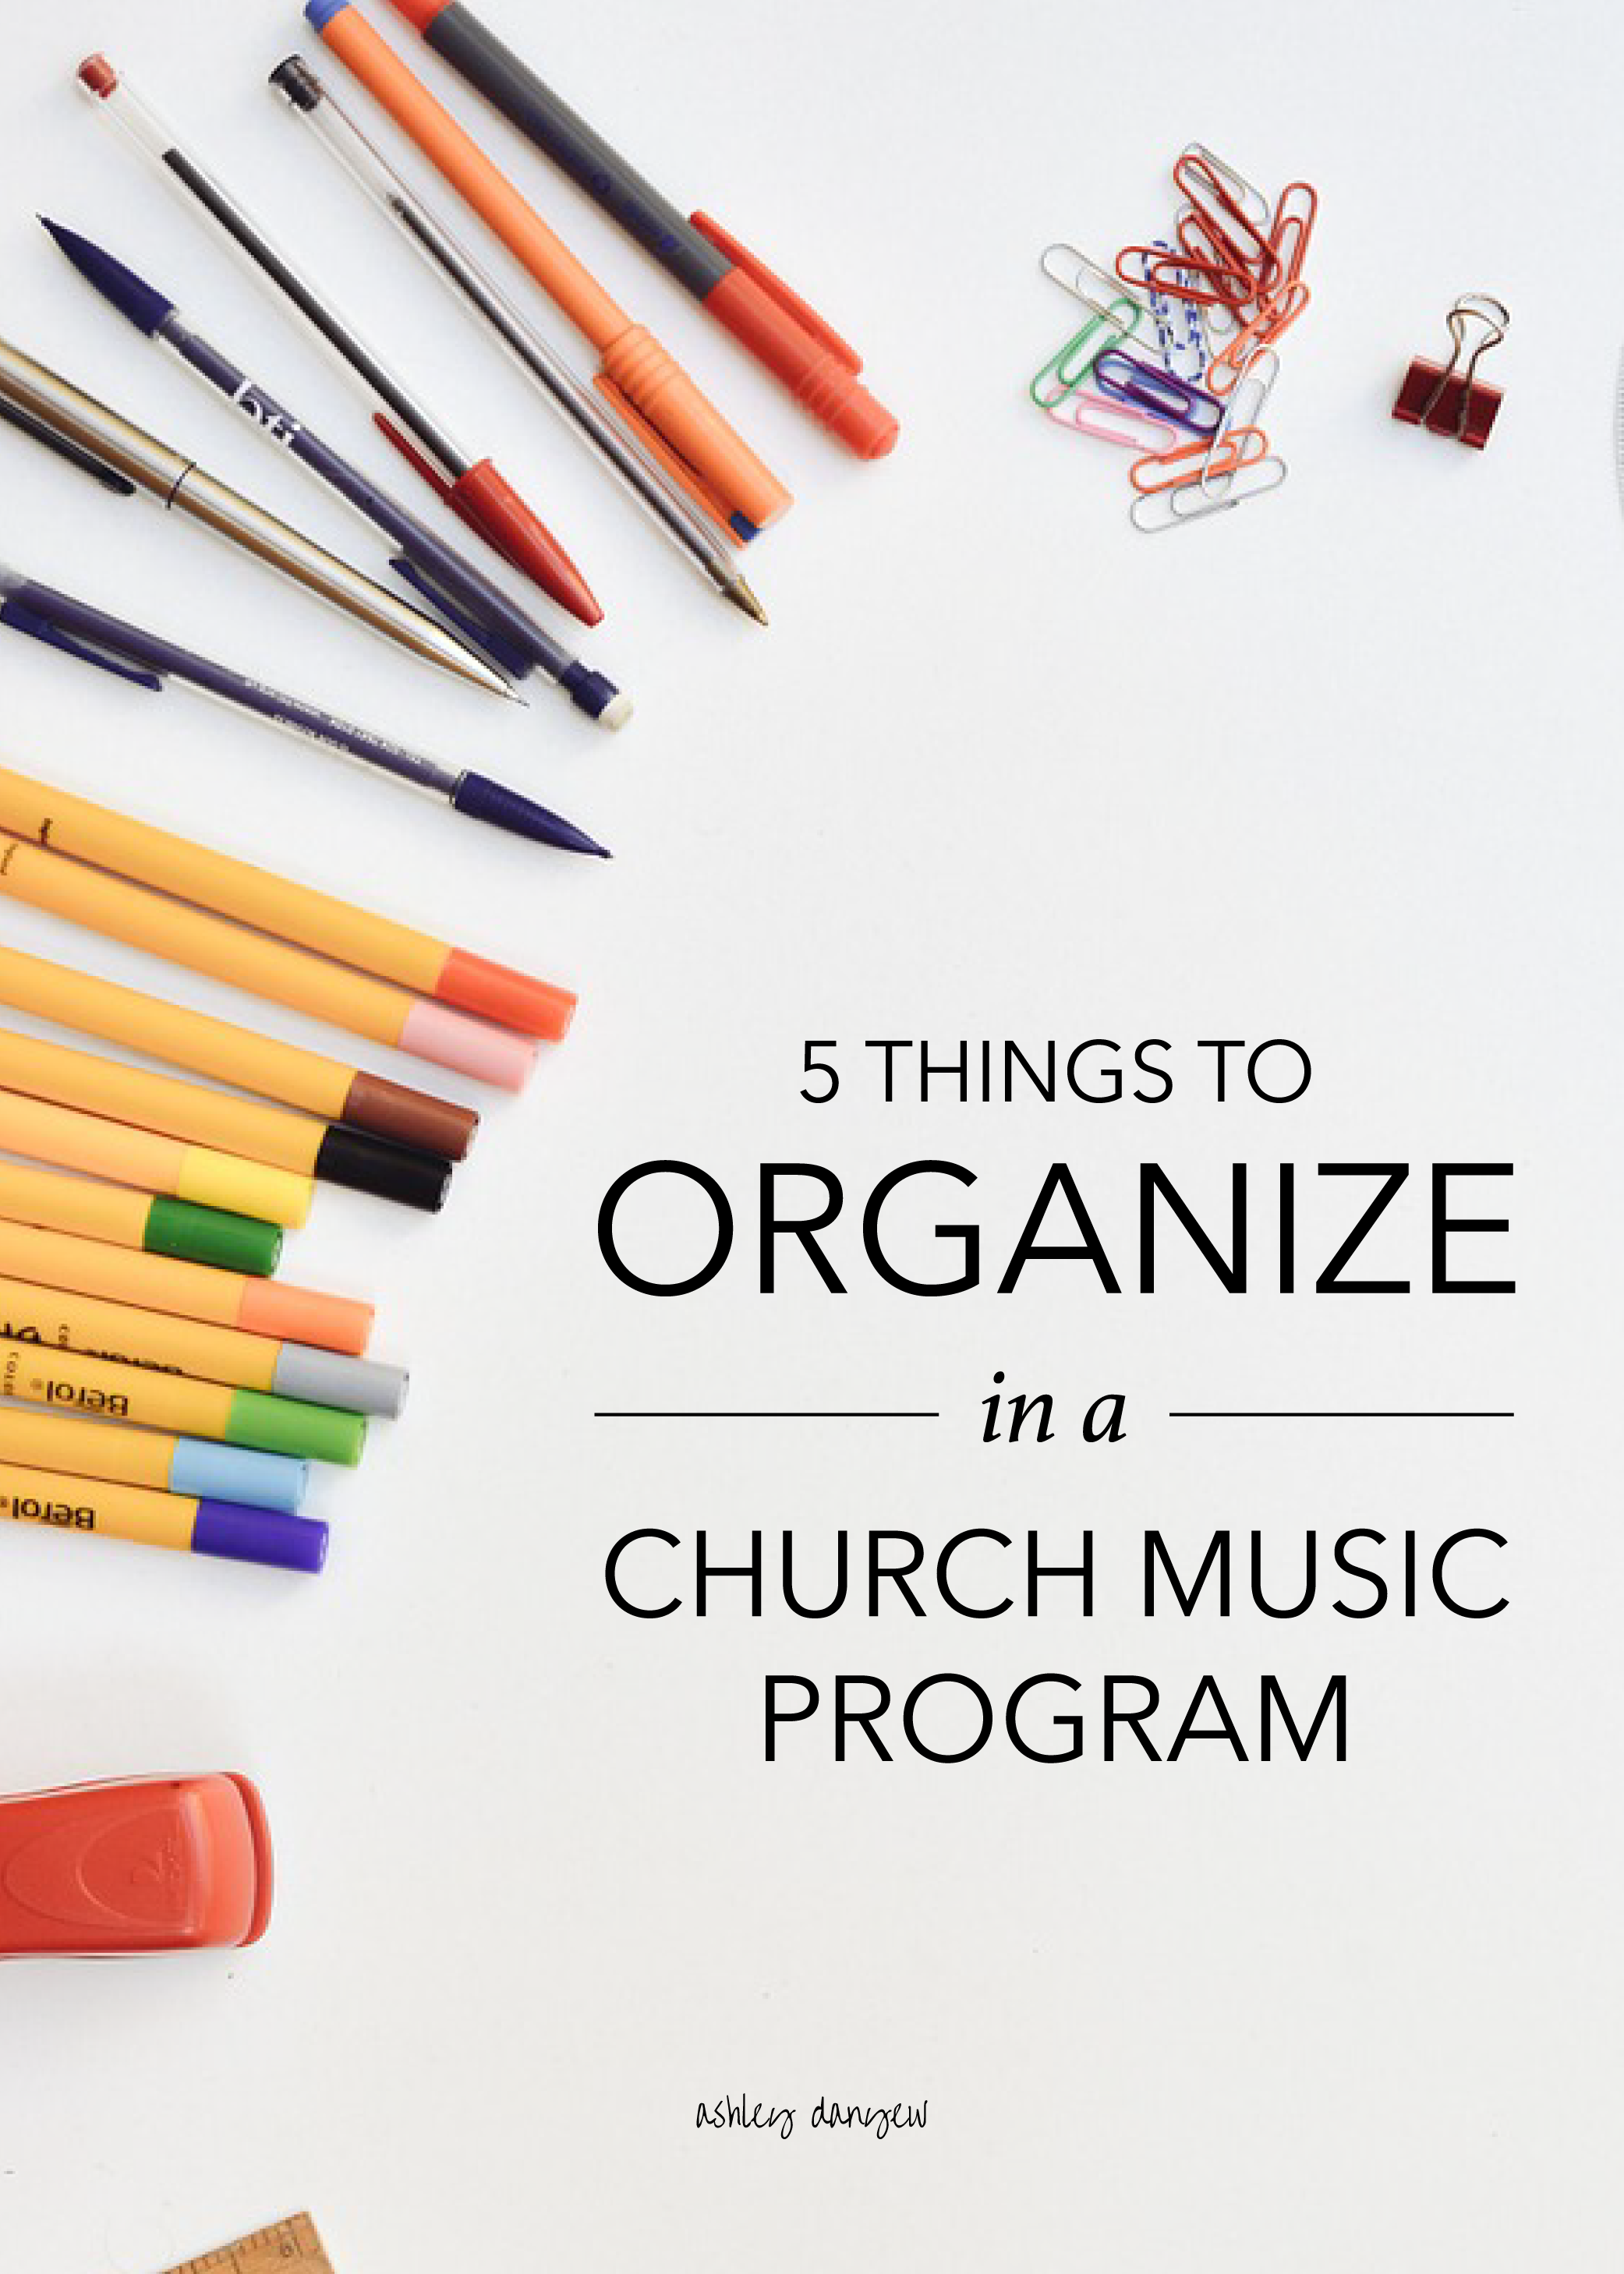 5 things to organize in a church music program (plus a few tips and tricks!) | @ashleydanyew